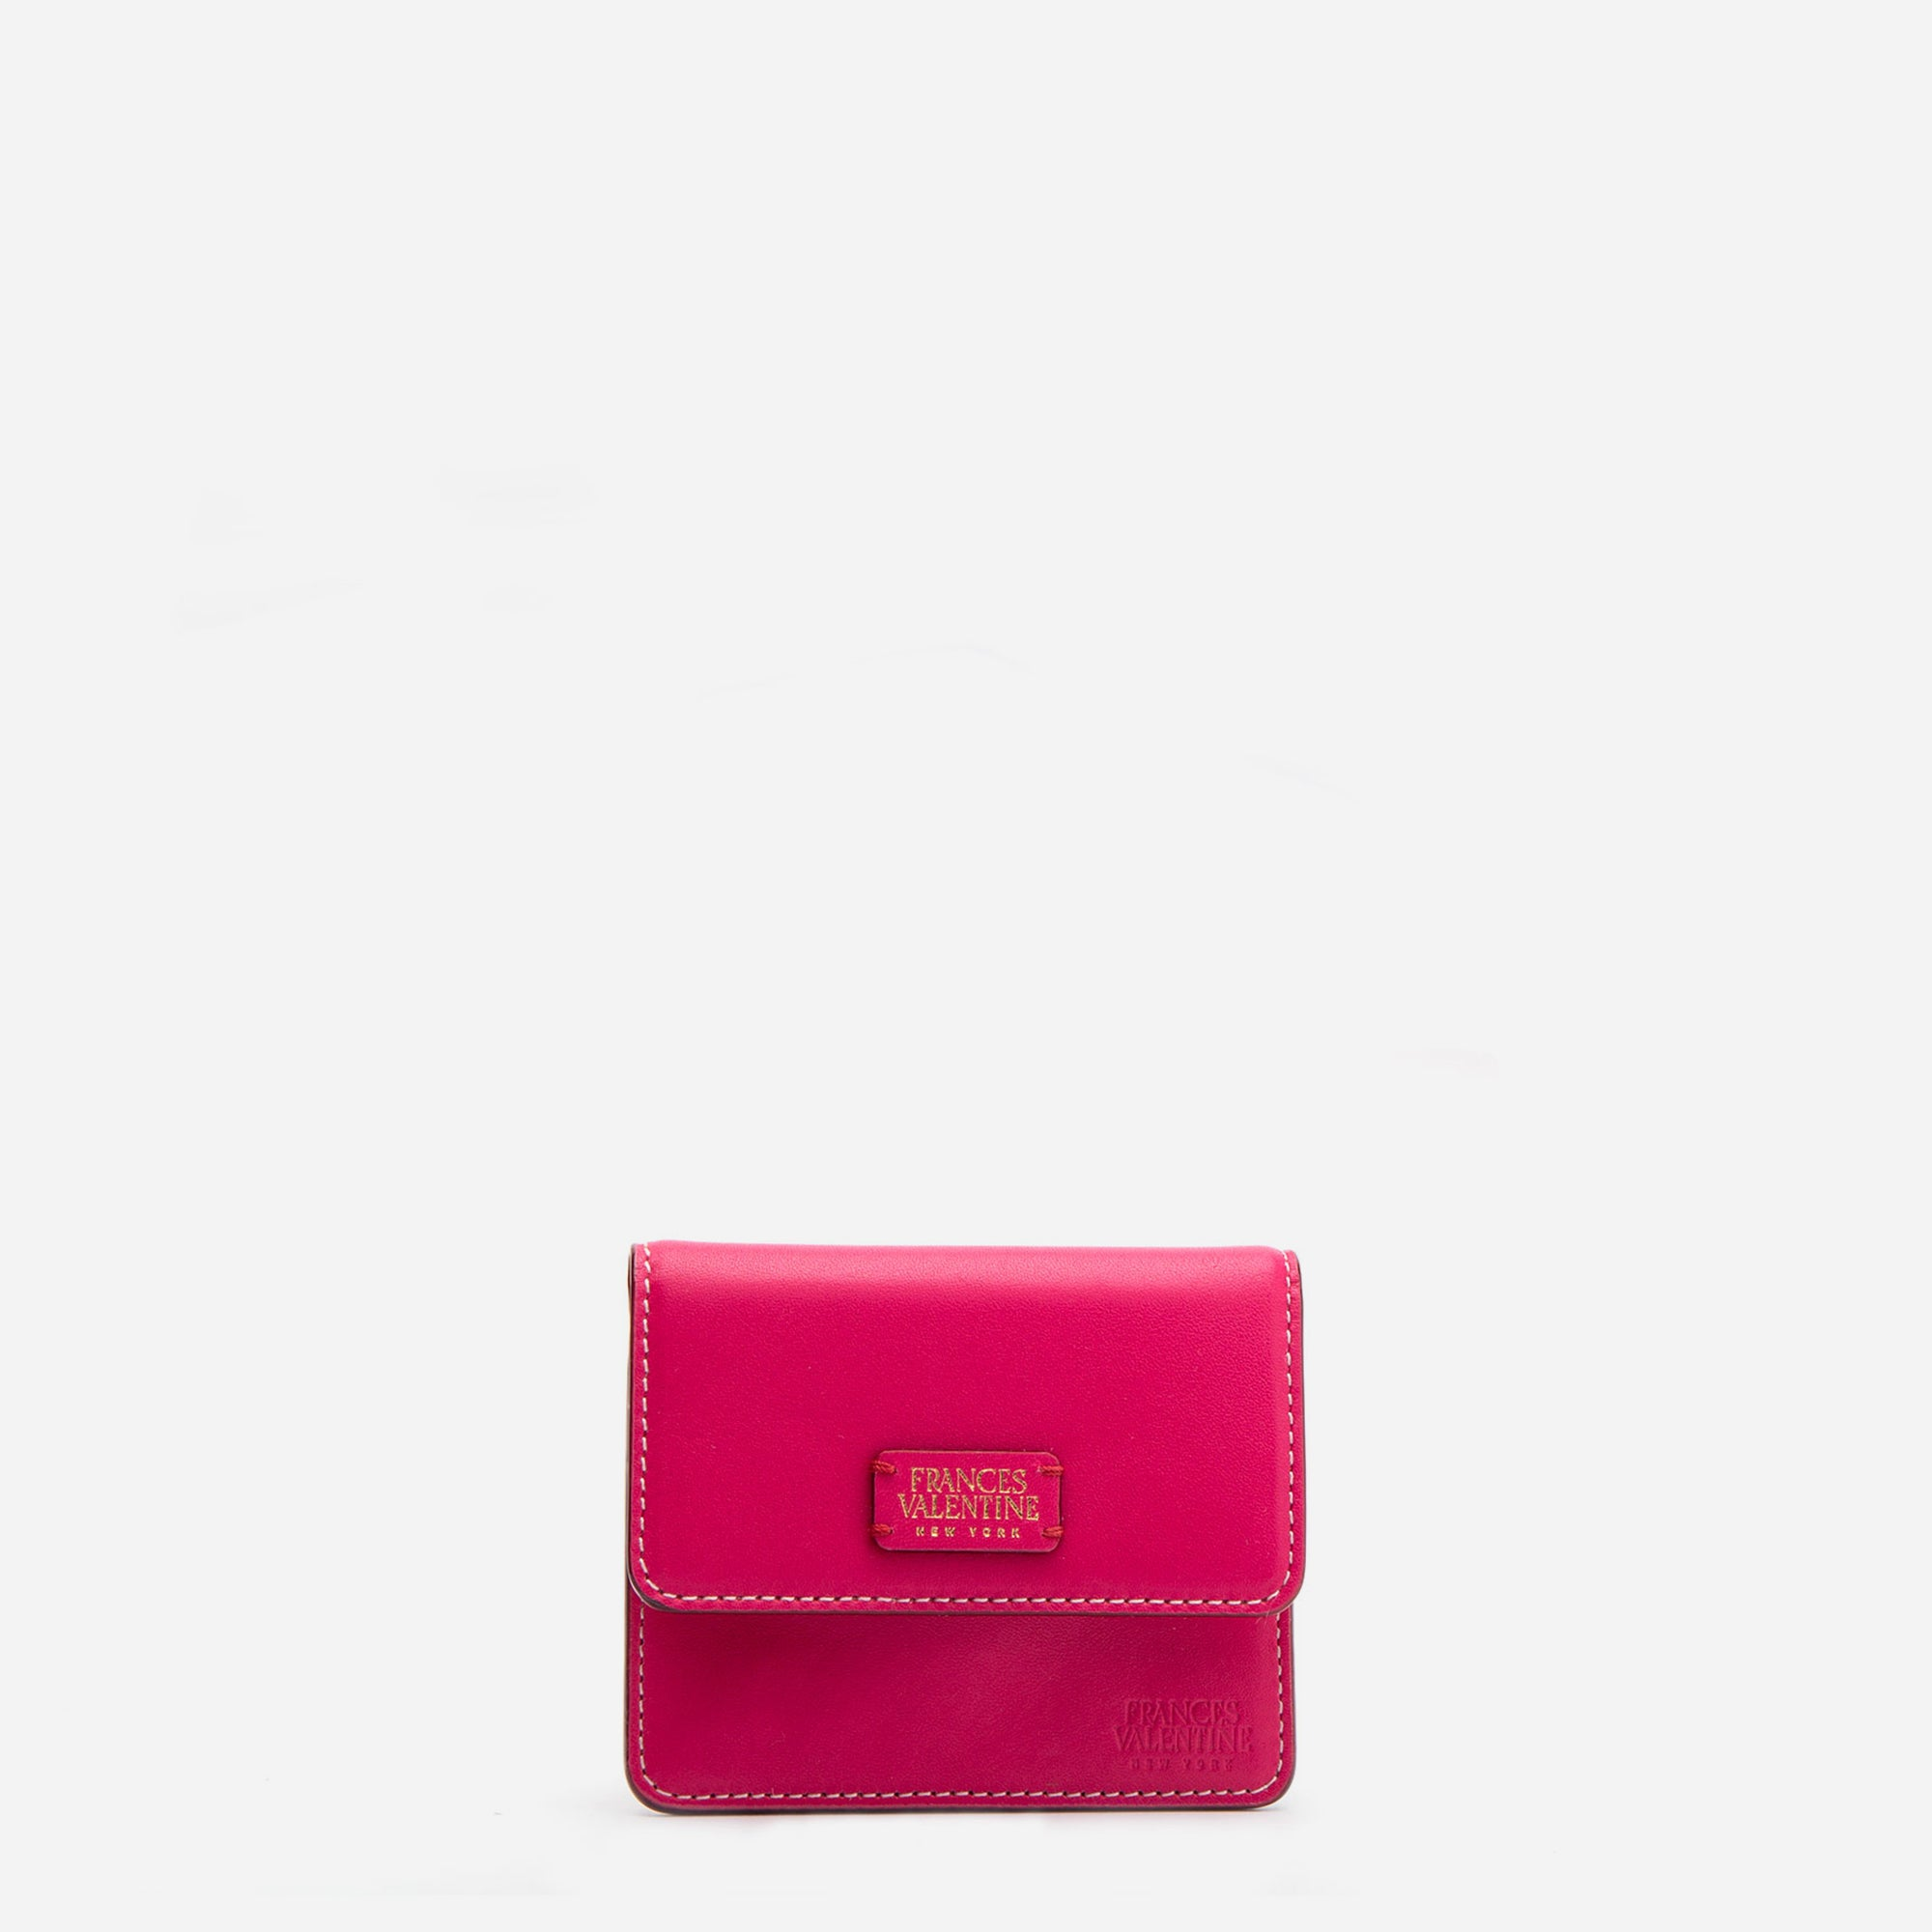 Susan B. Anthony Wallet Pink Red